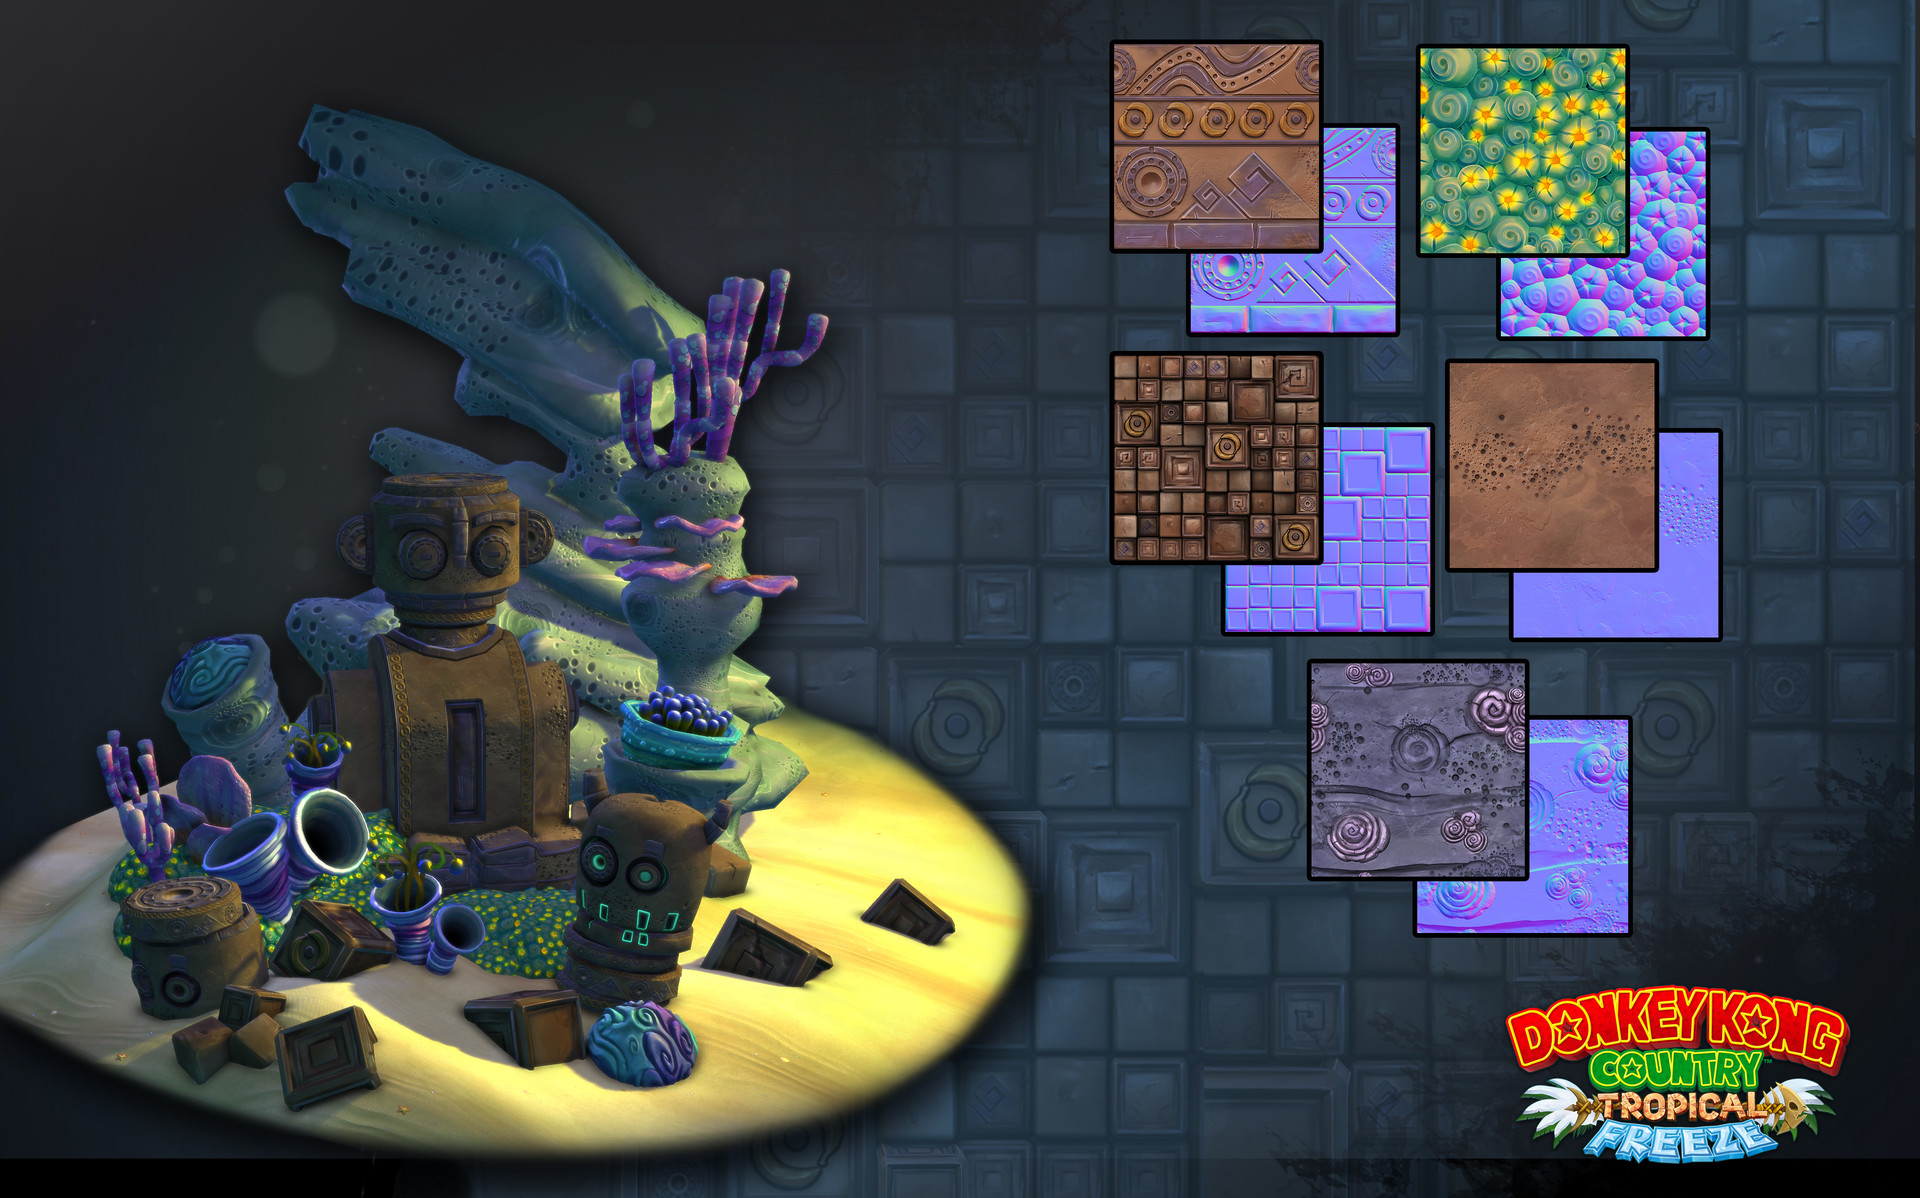 Donkey Kong Country Tropical Freeze - Props and Level Assets